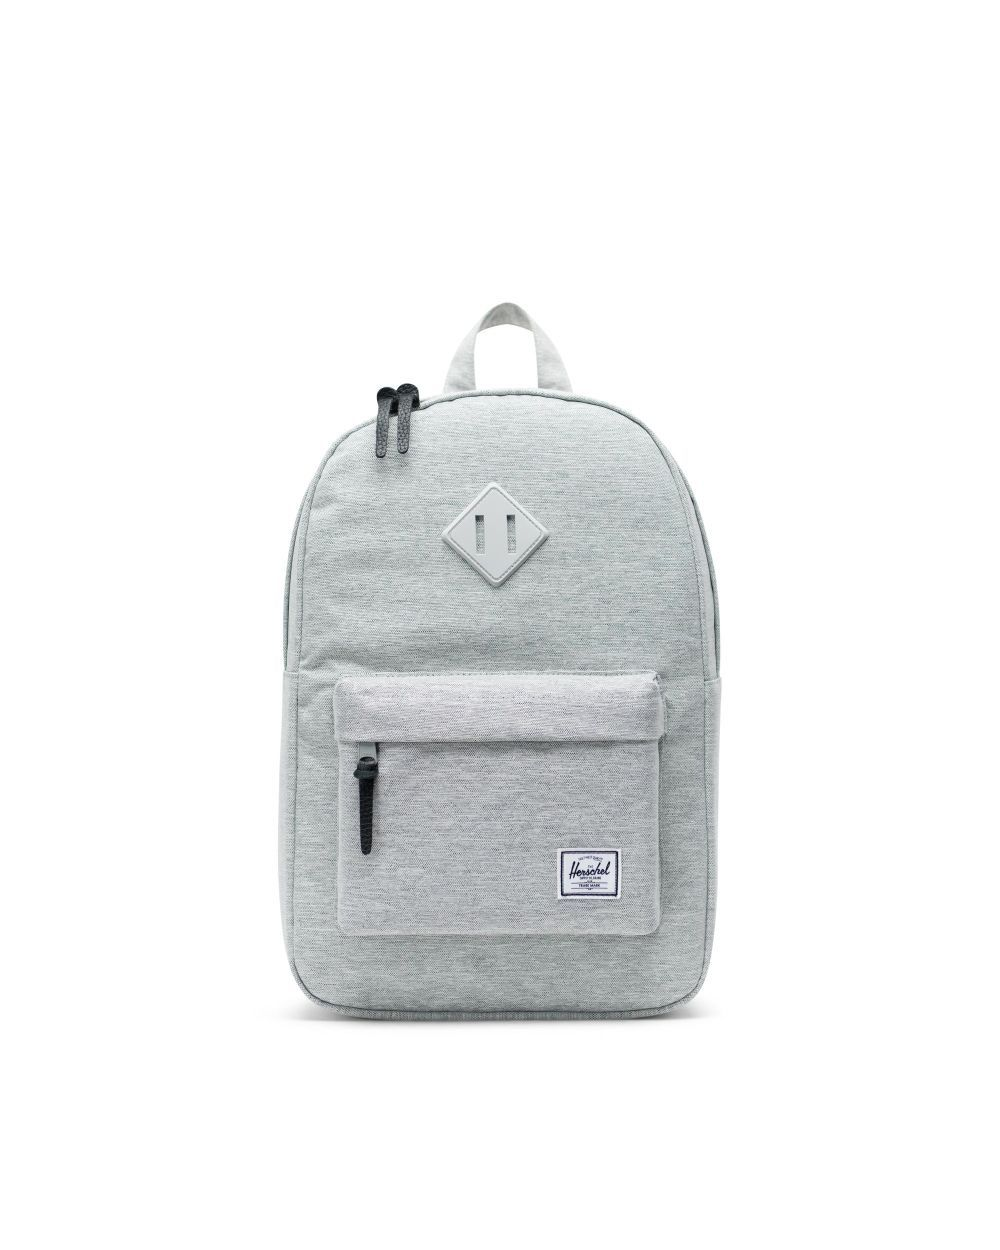 4aaabd94a0e38 Heritage Backpack Mid-Volume | Herschel Supply Company | Personal ...